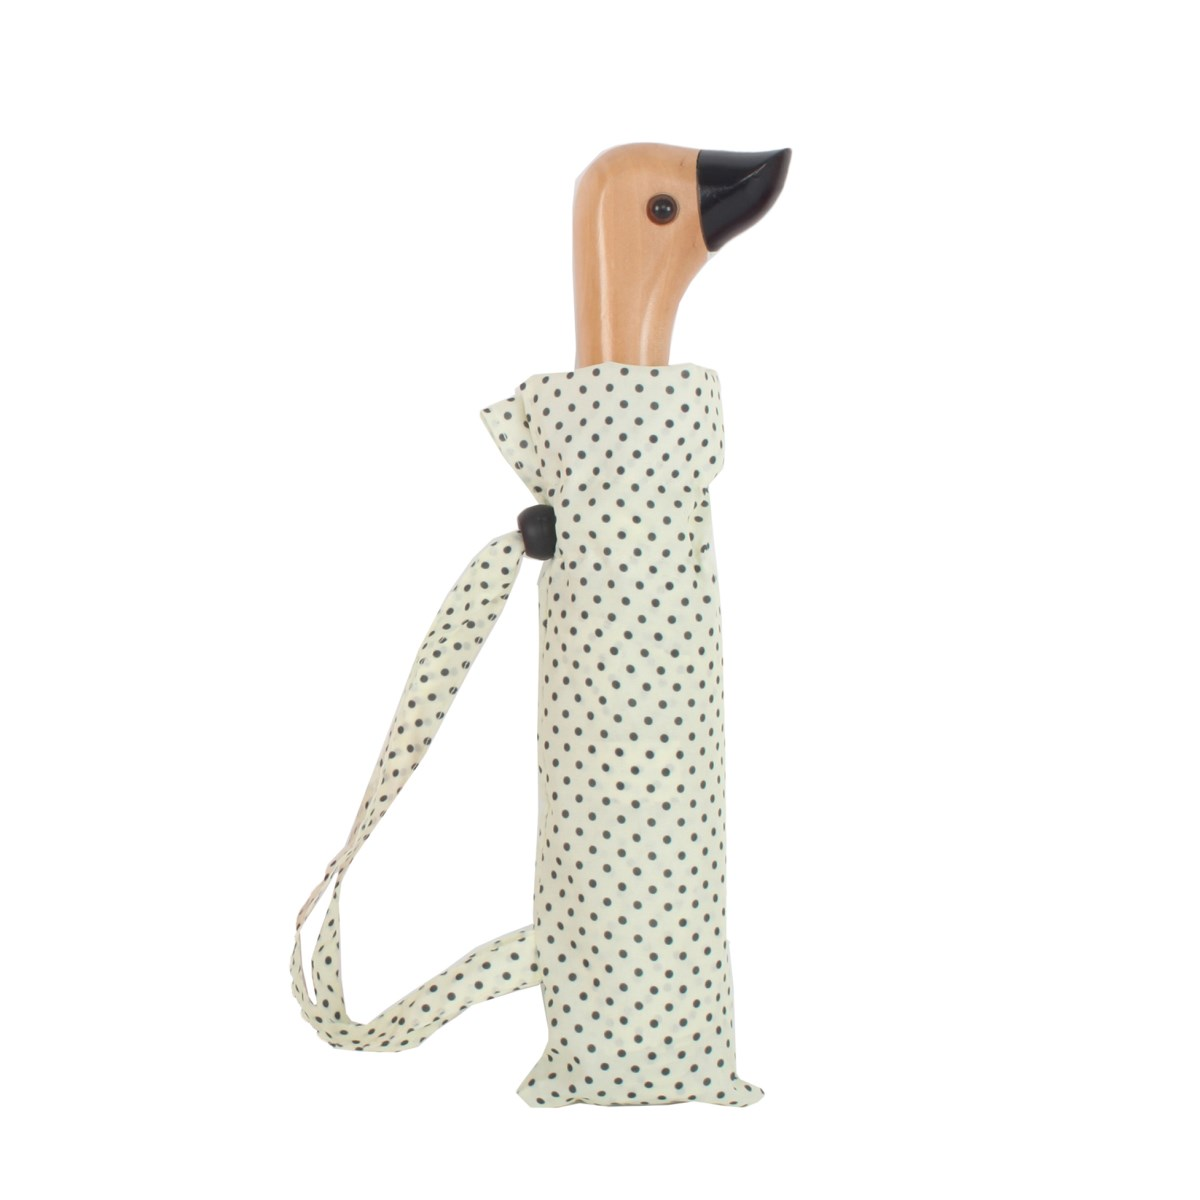 Cream & Black Polka Dot Duck Head Handle Ladies Compact Umbrella (31702)